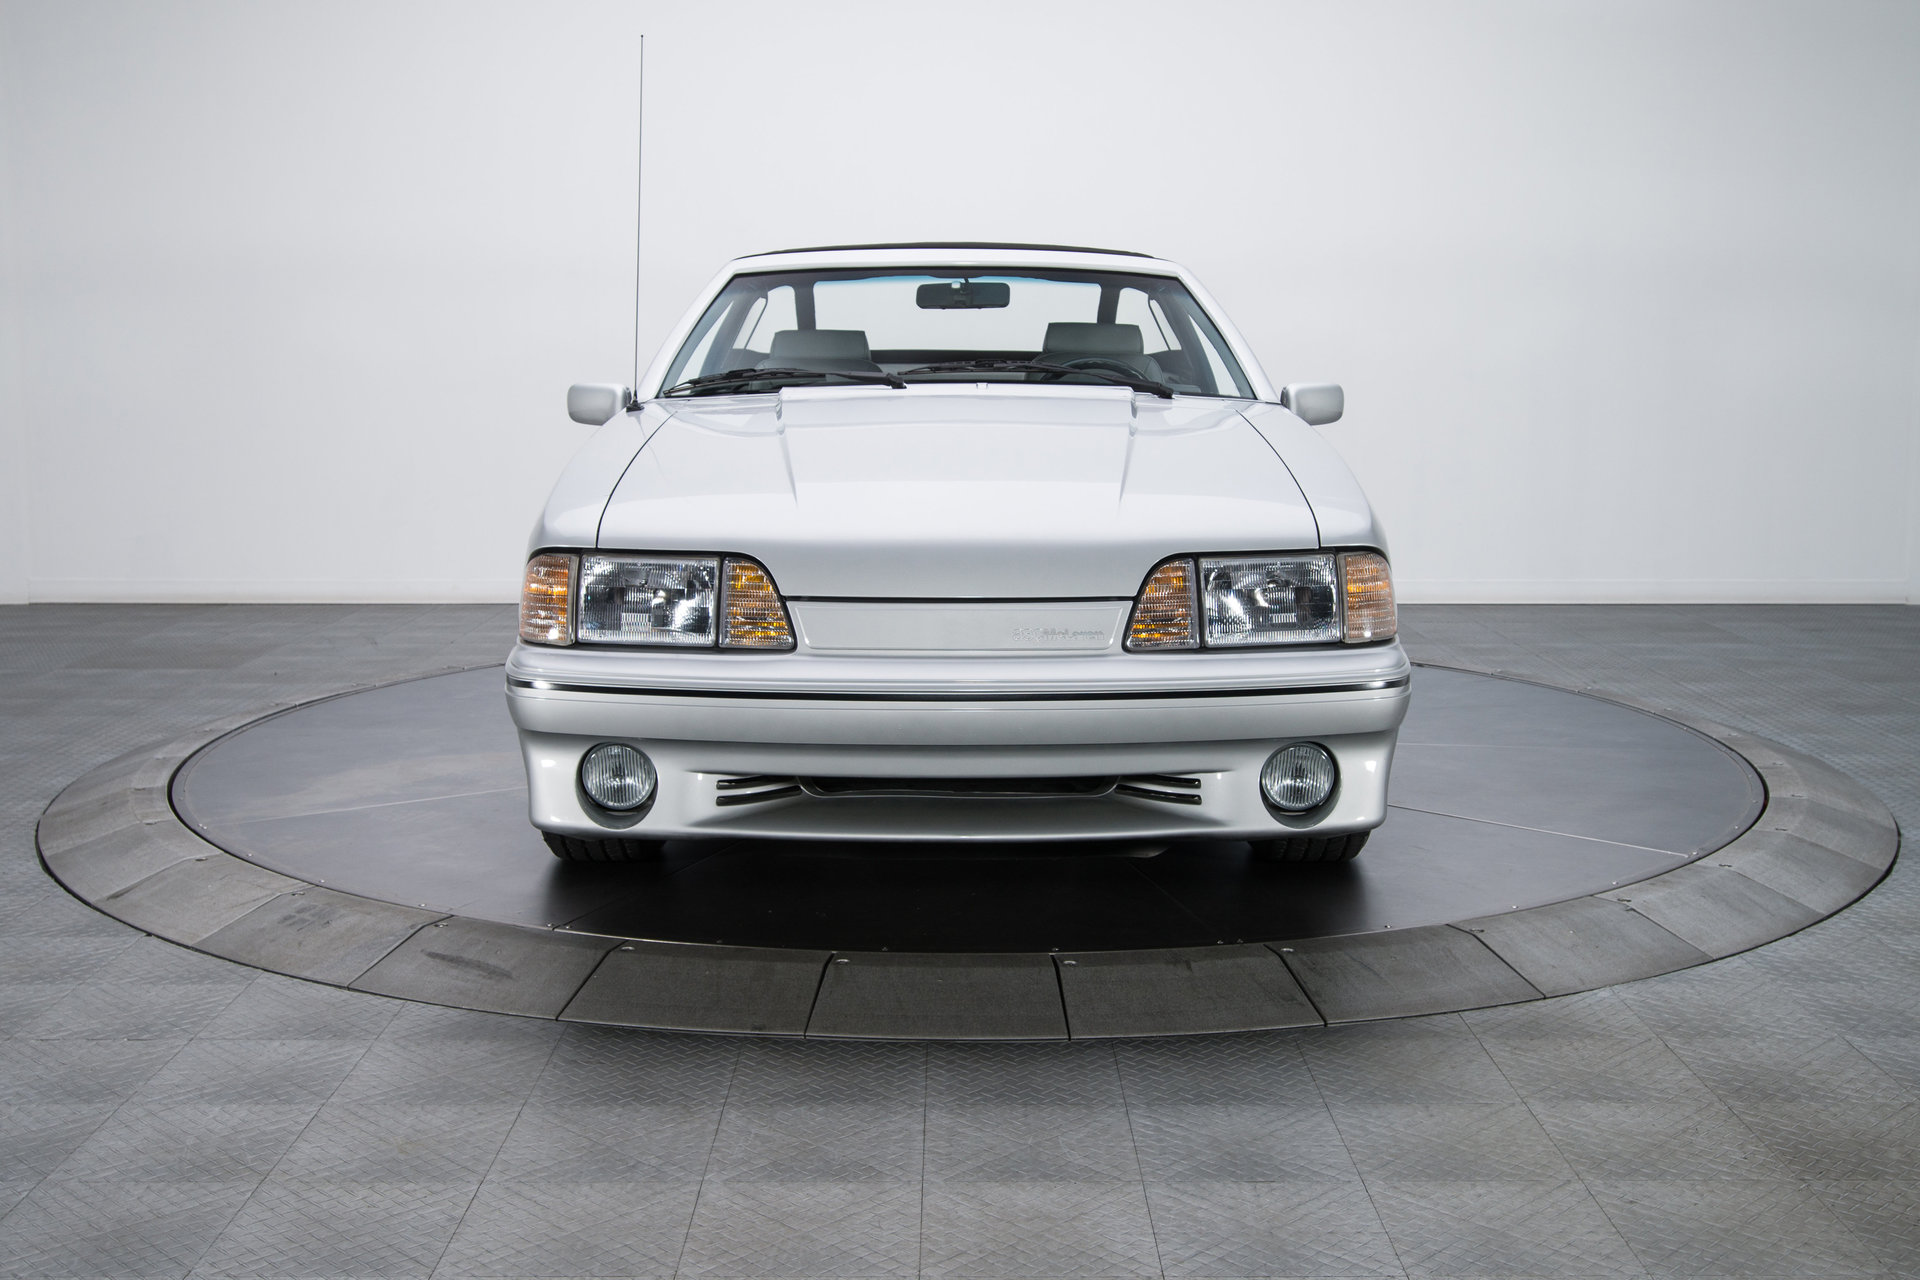 1988 Ford Mustang Asc Mclaren For Sale 81582 Mcg Fog Lights